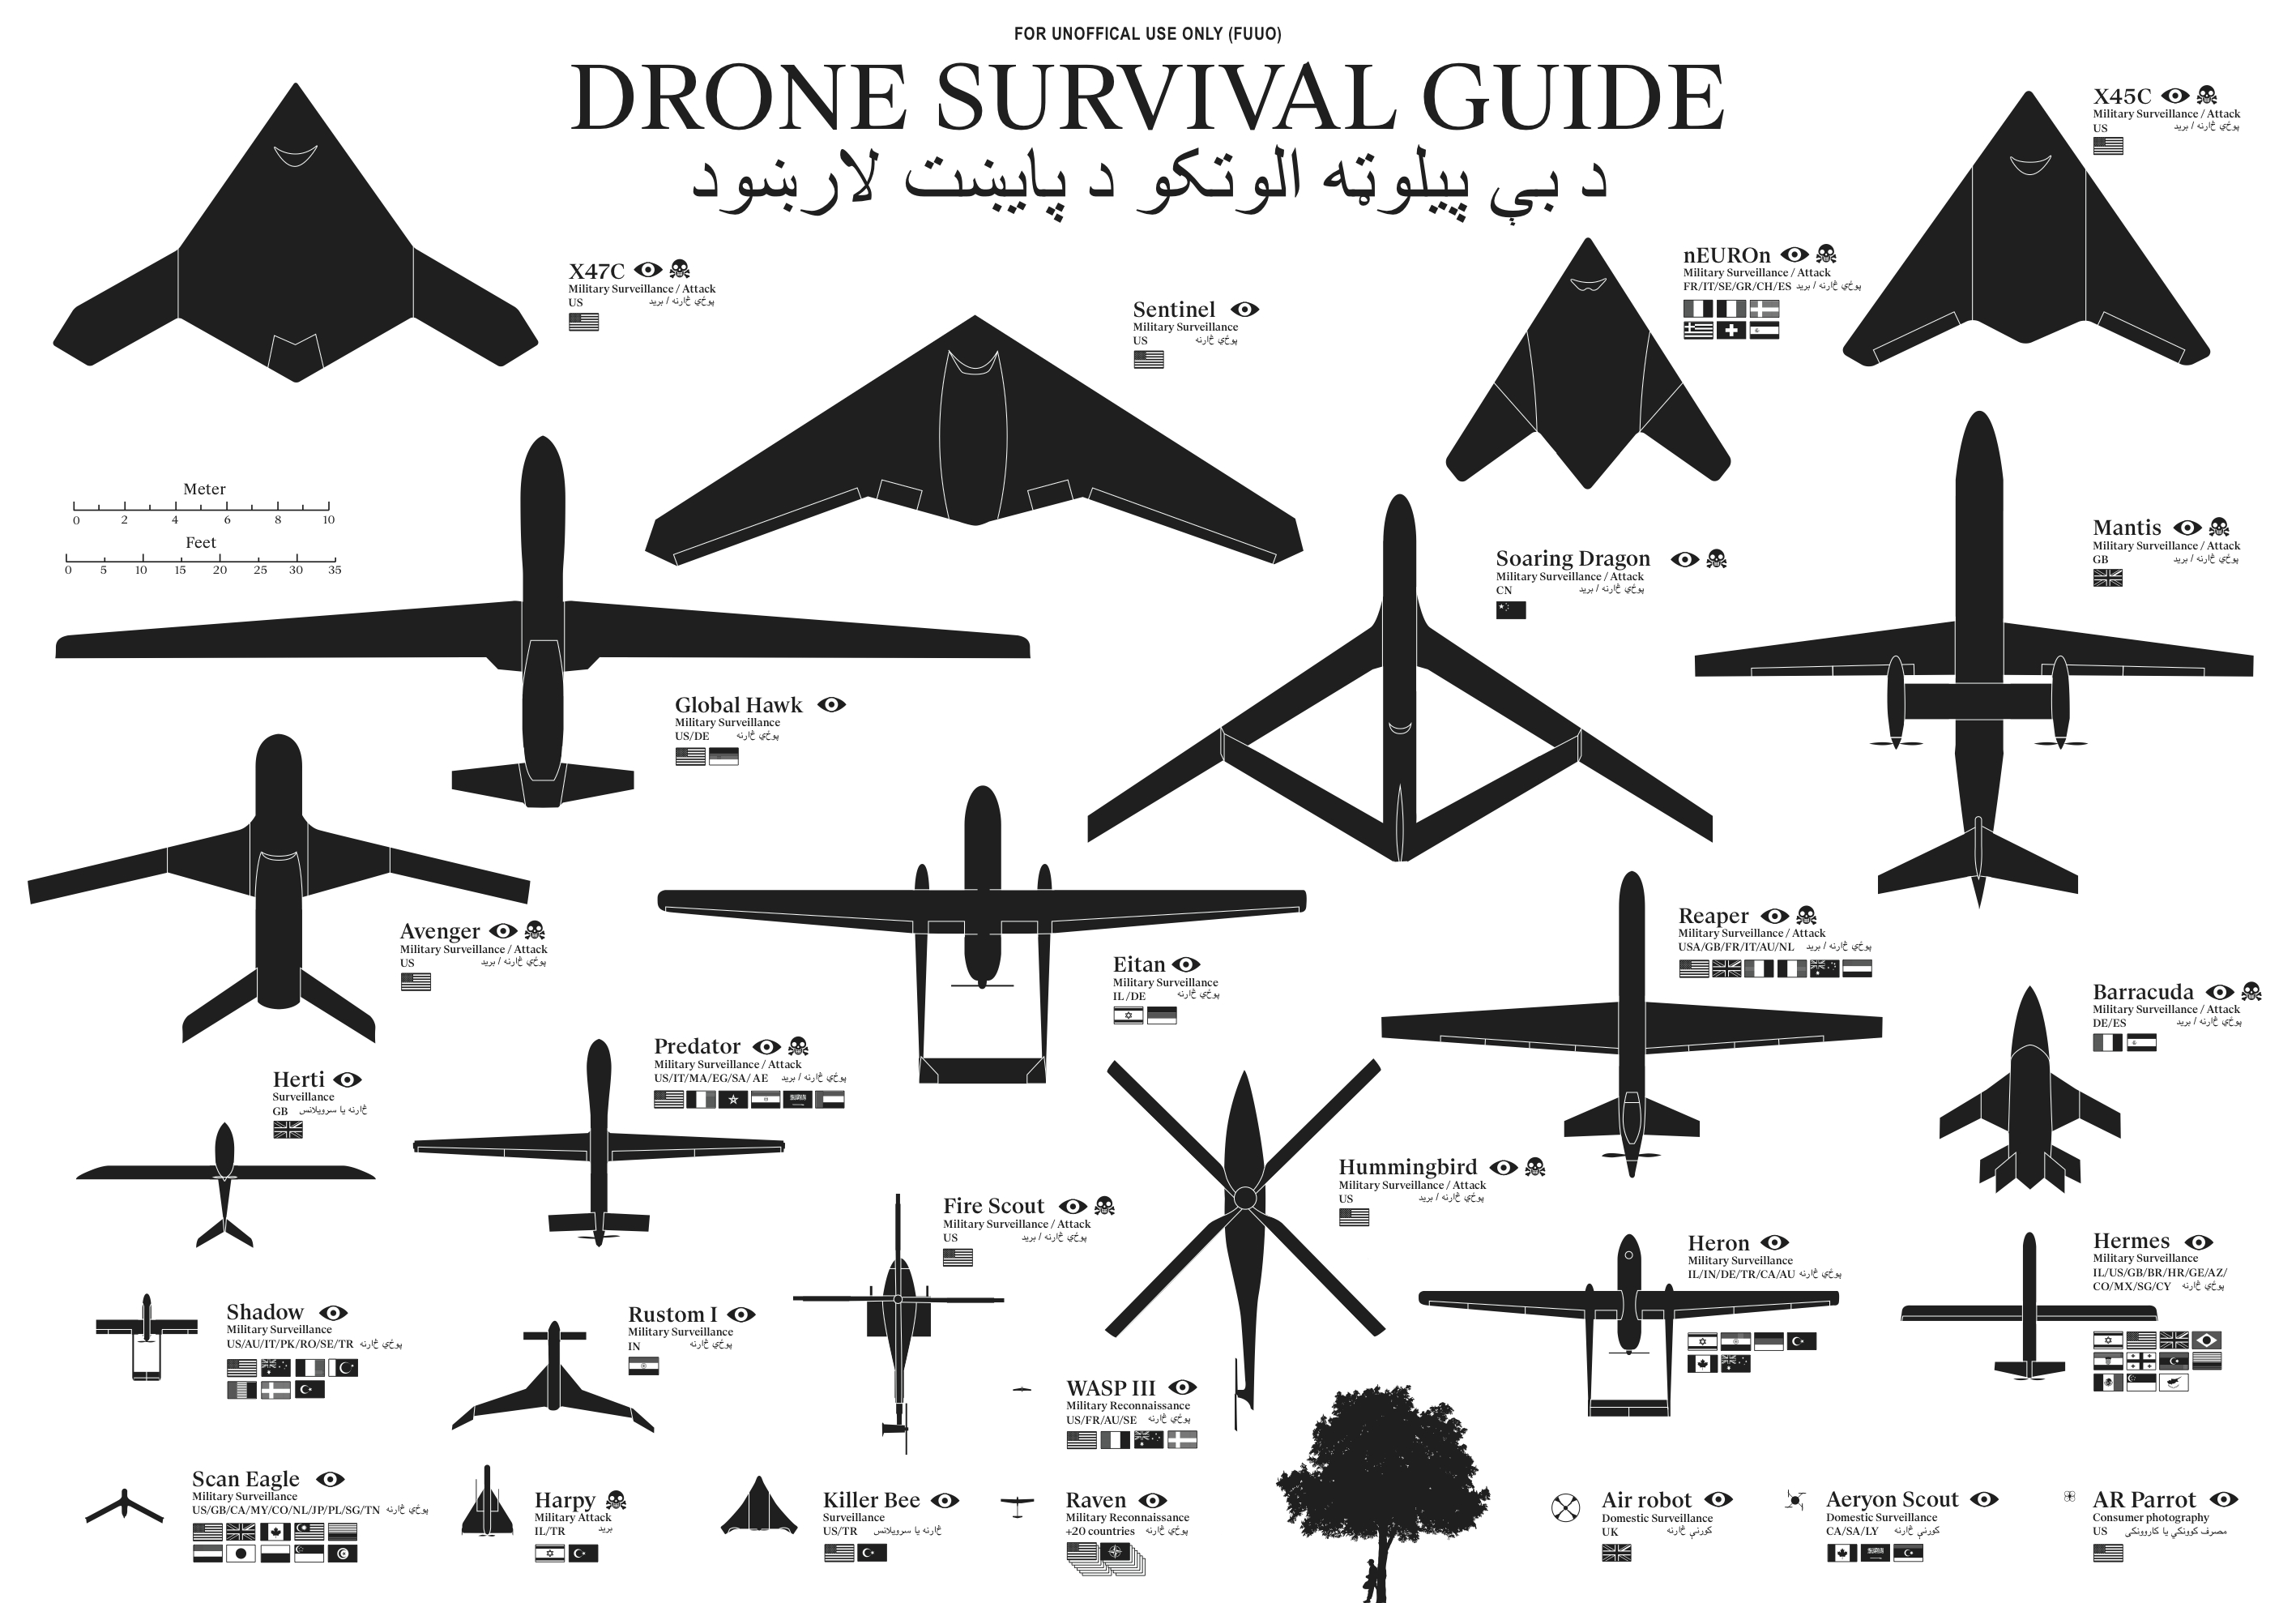 The Drone Survival Guide Information